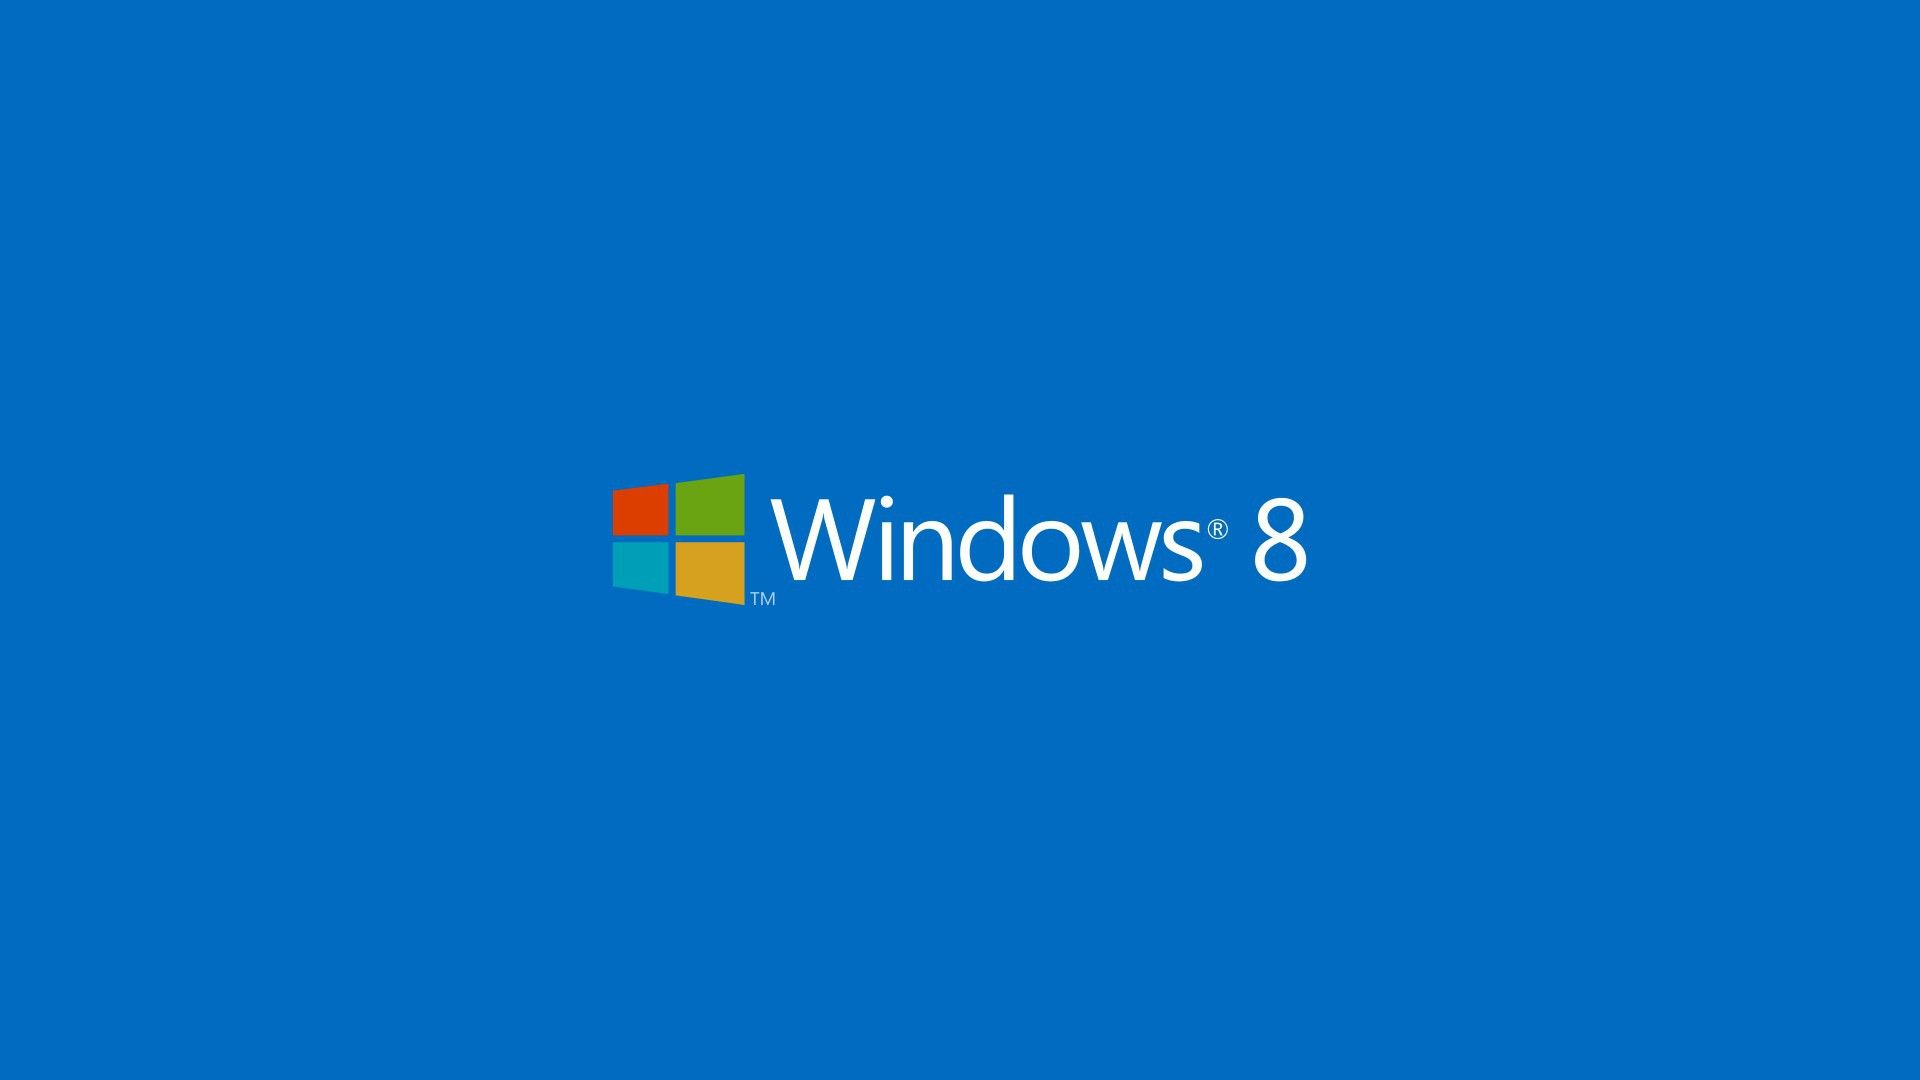 microsoft windows 8 backgrounds (1920x1080, windows, backgrounds